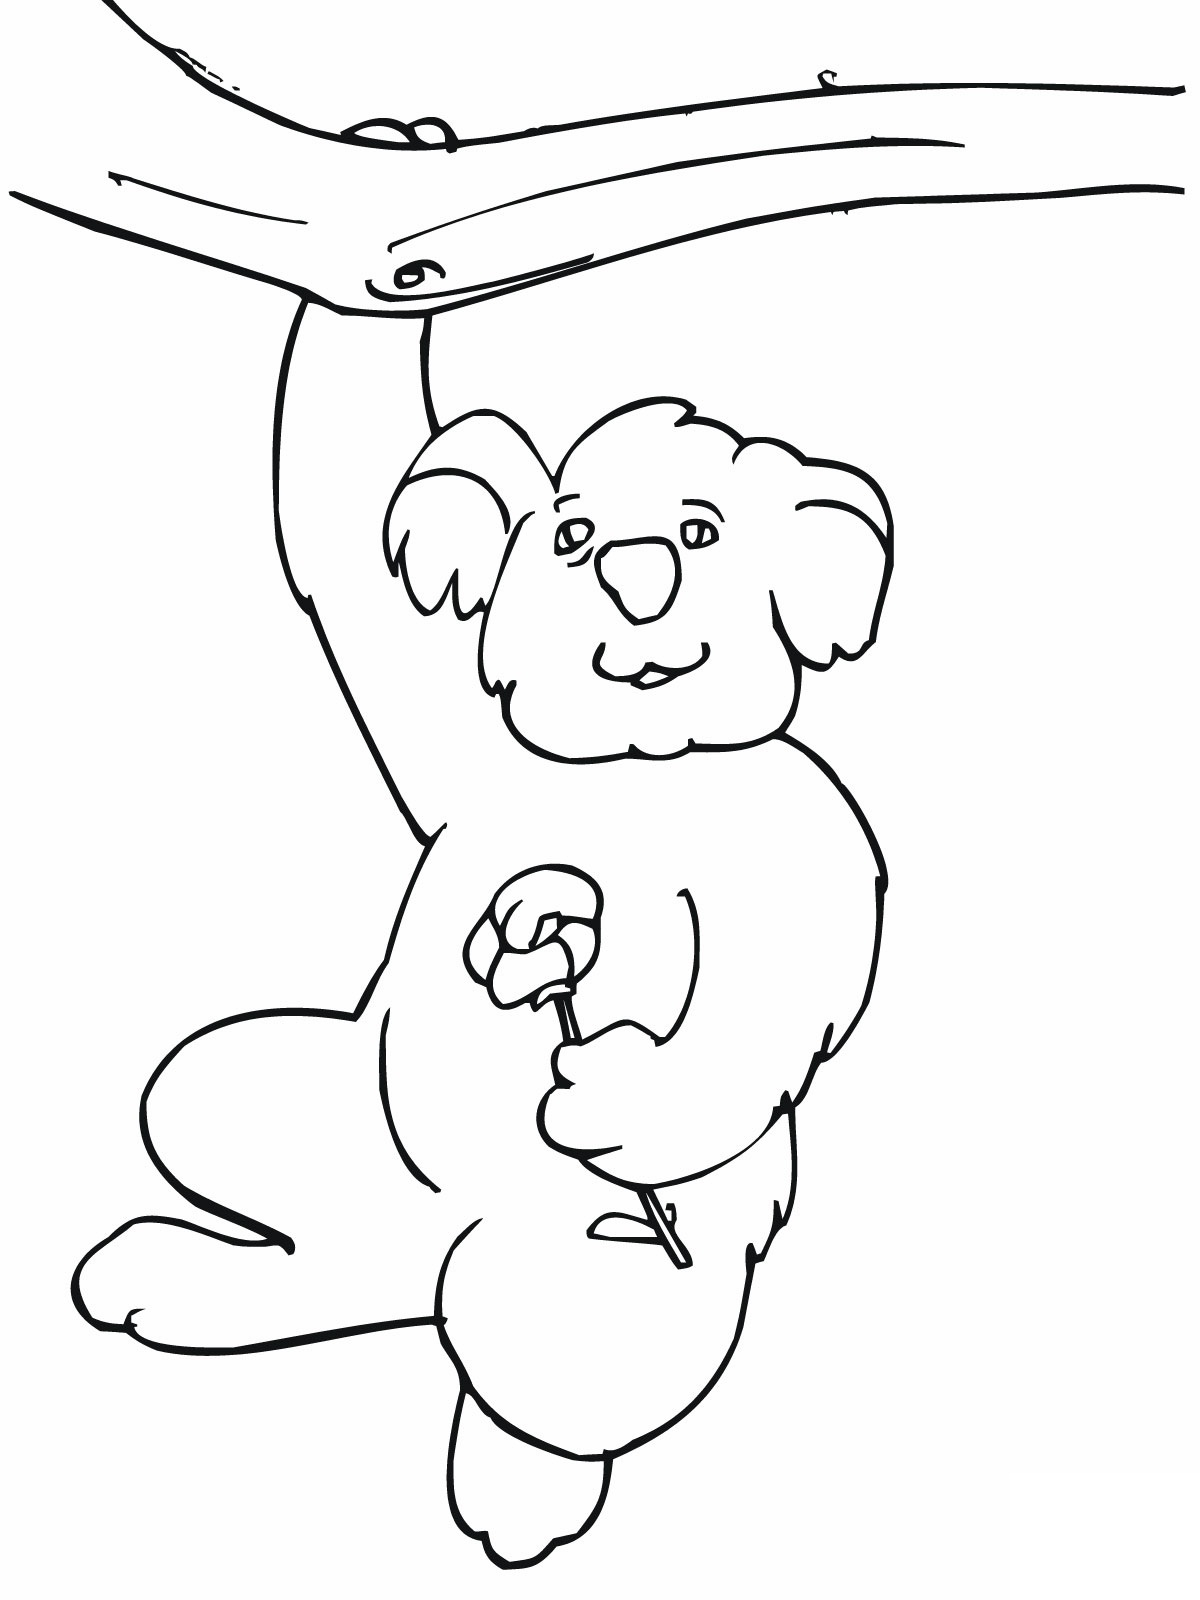 k is for koala bear coloring pages - photo #39